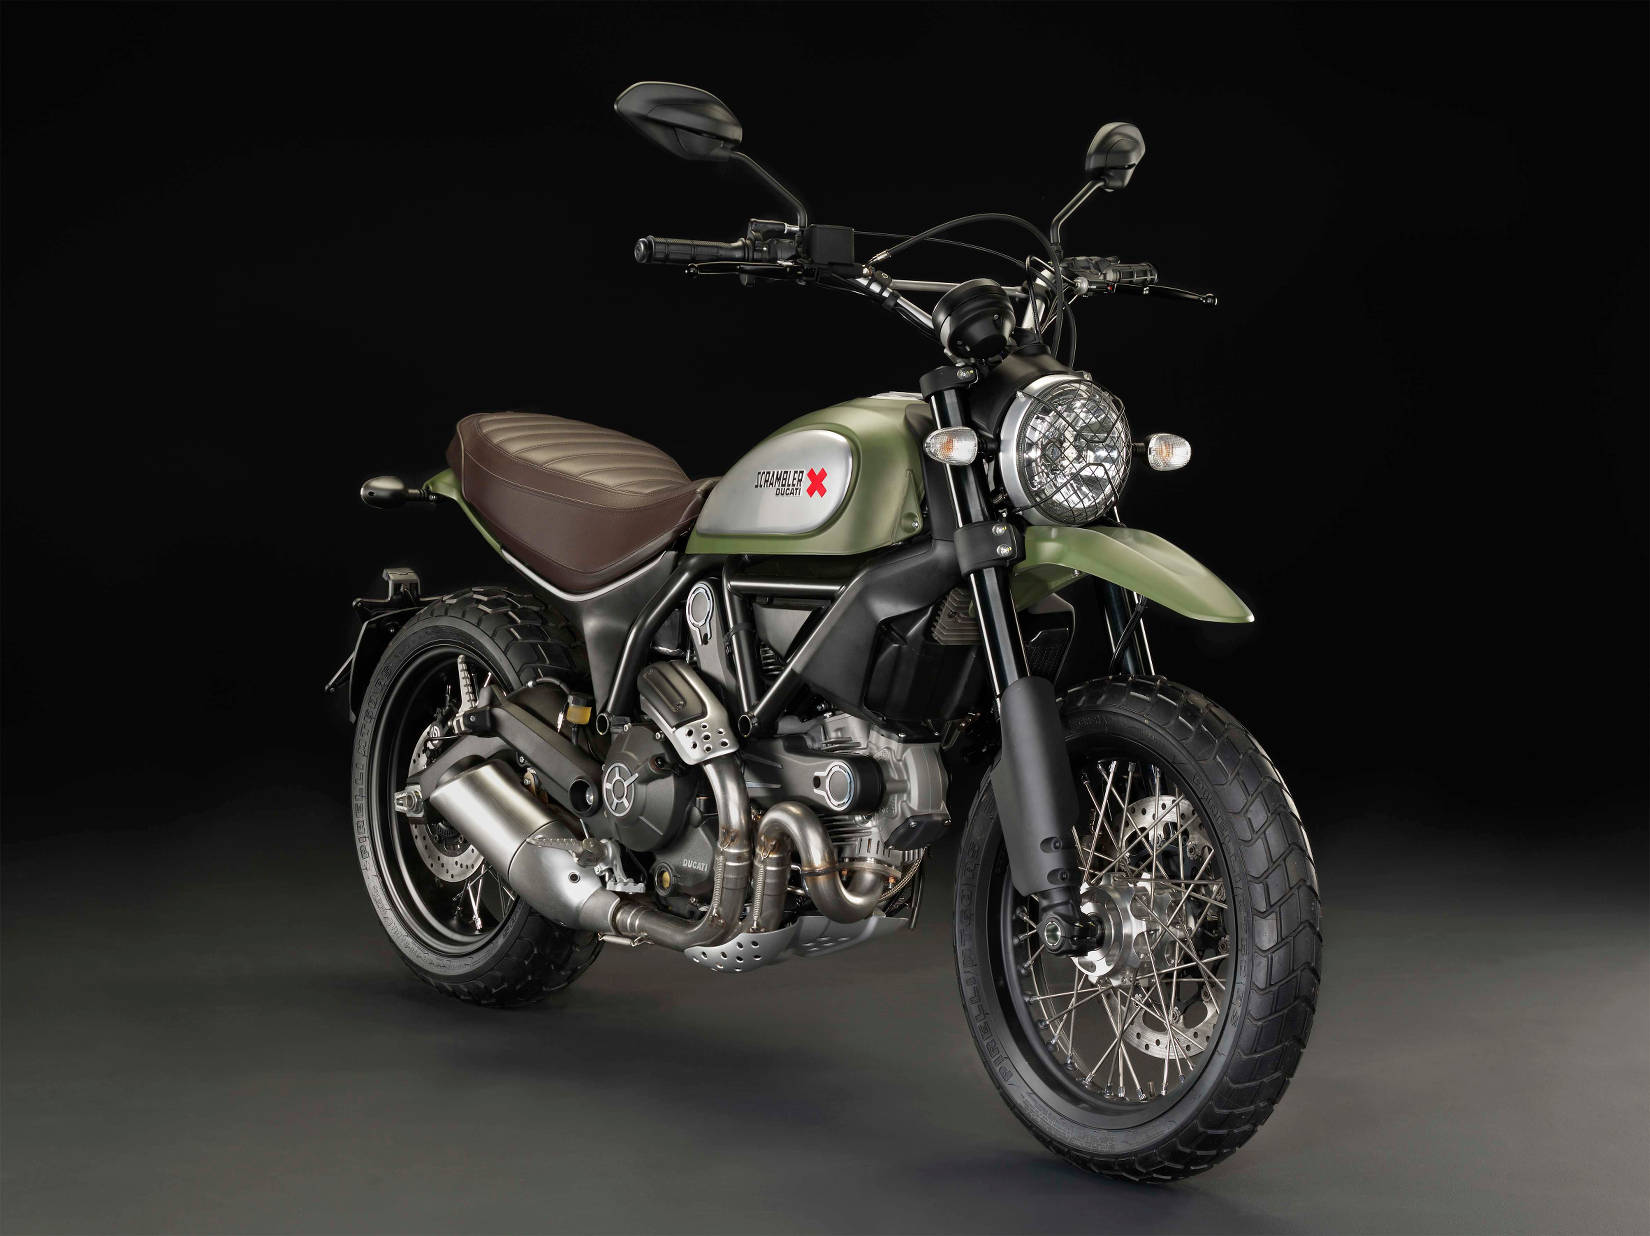 ducati scrambler ready for anything motorcycle news editorials product. Black Bedroom Furniture Sets. Home Design Ideas